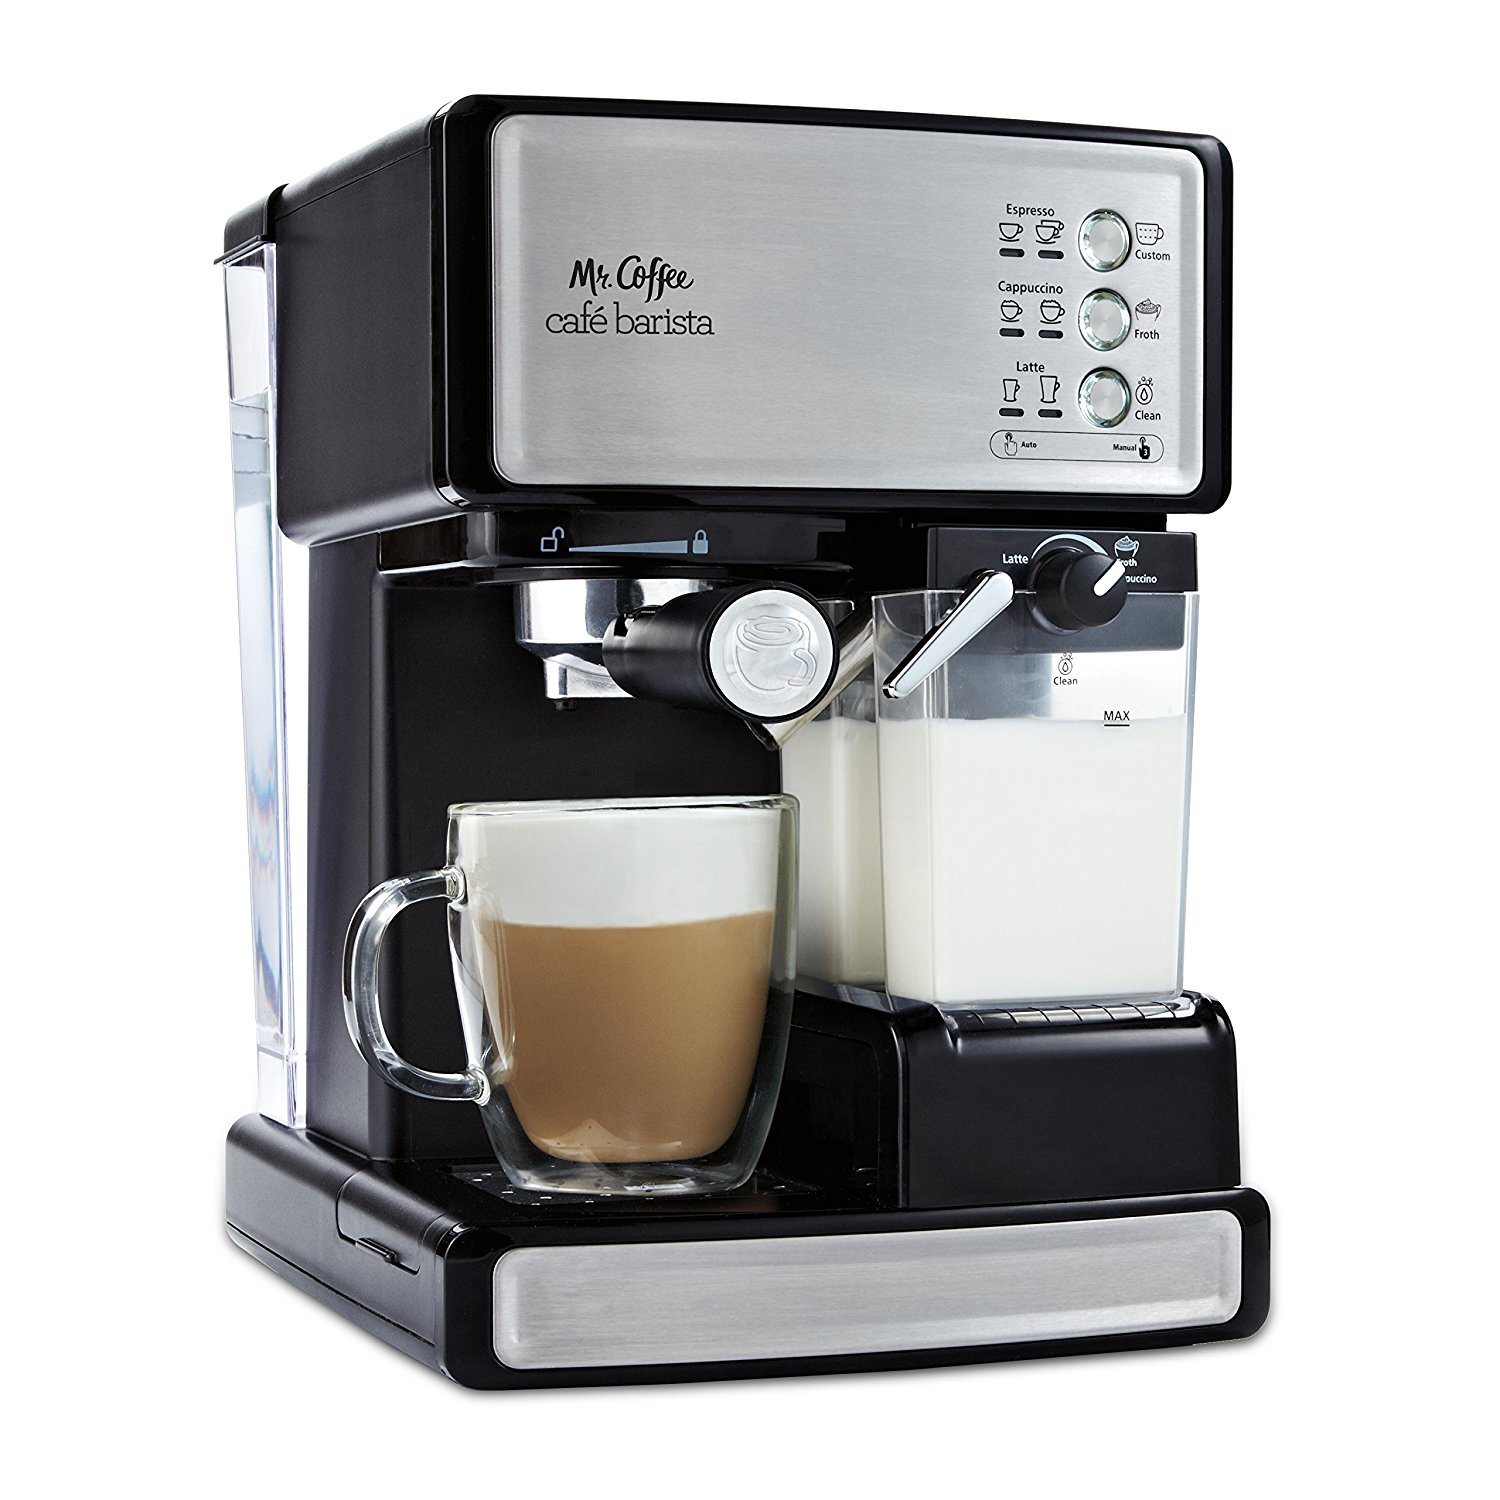 Mr Coffee BVMC-ECMP1000 Cafe Barista Espresso Machine